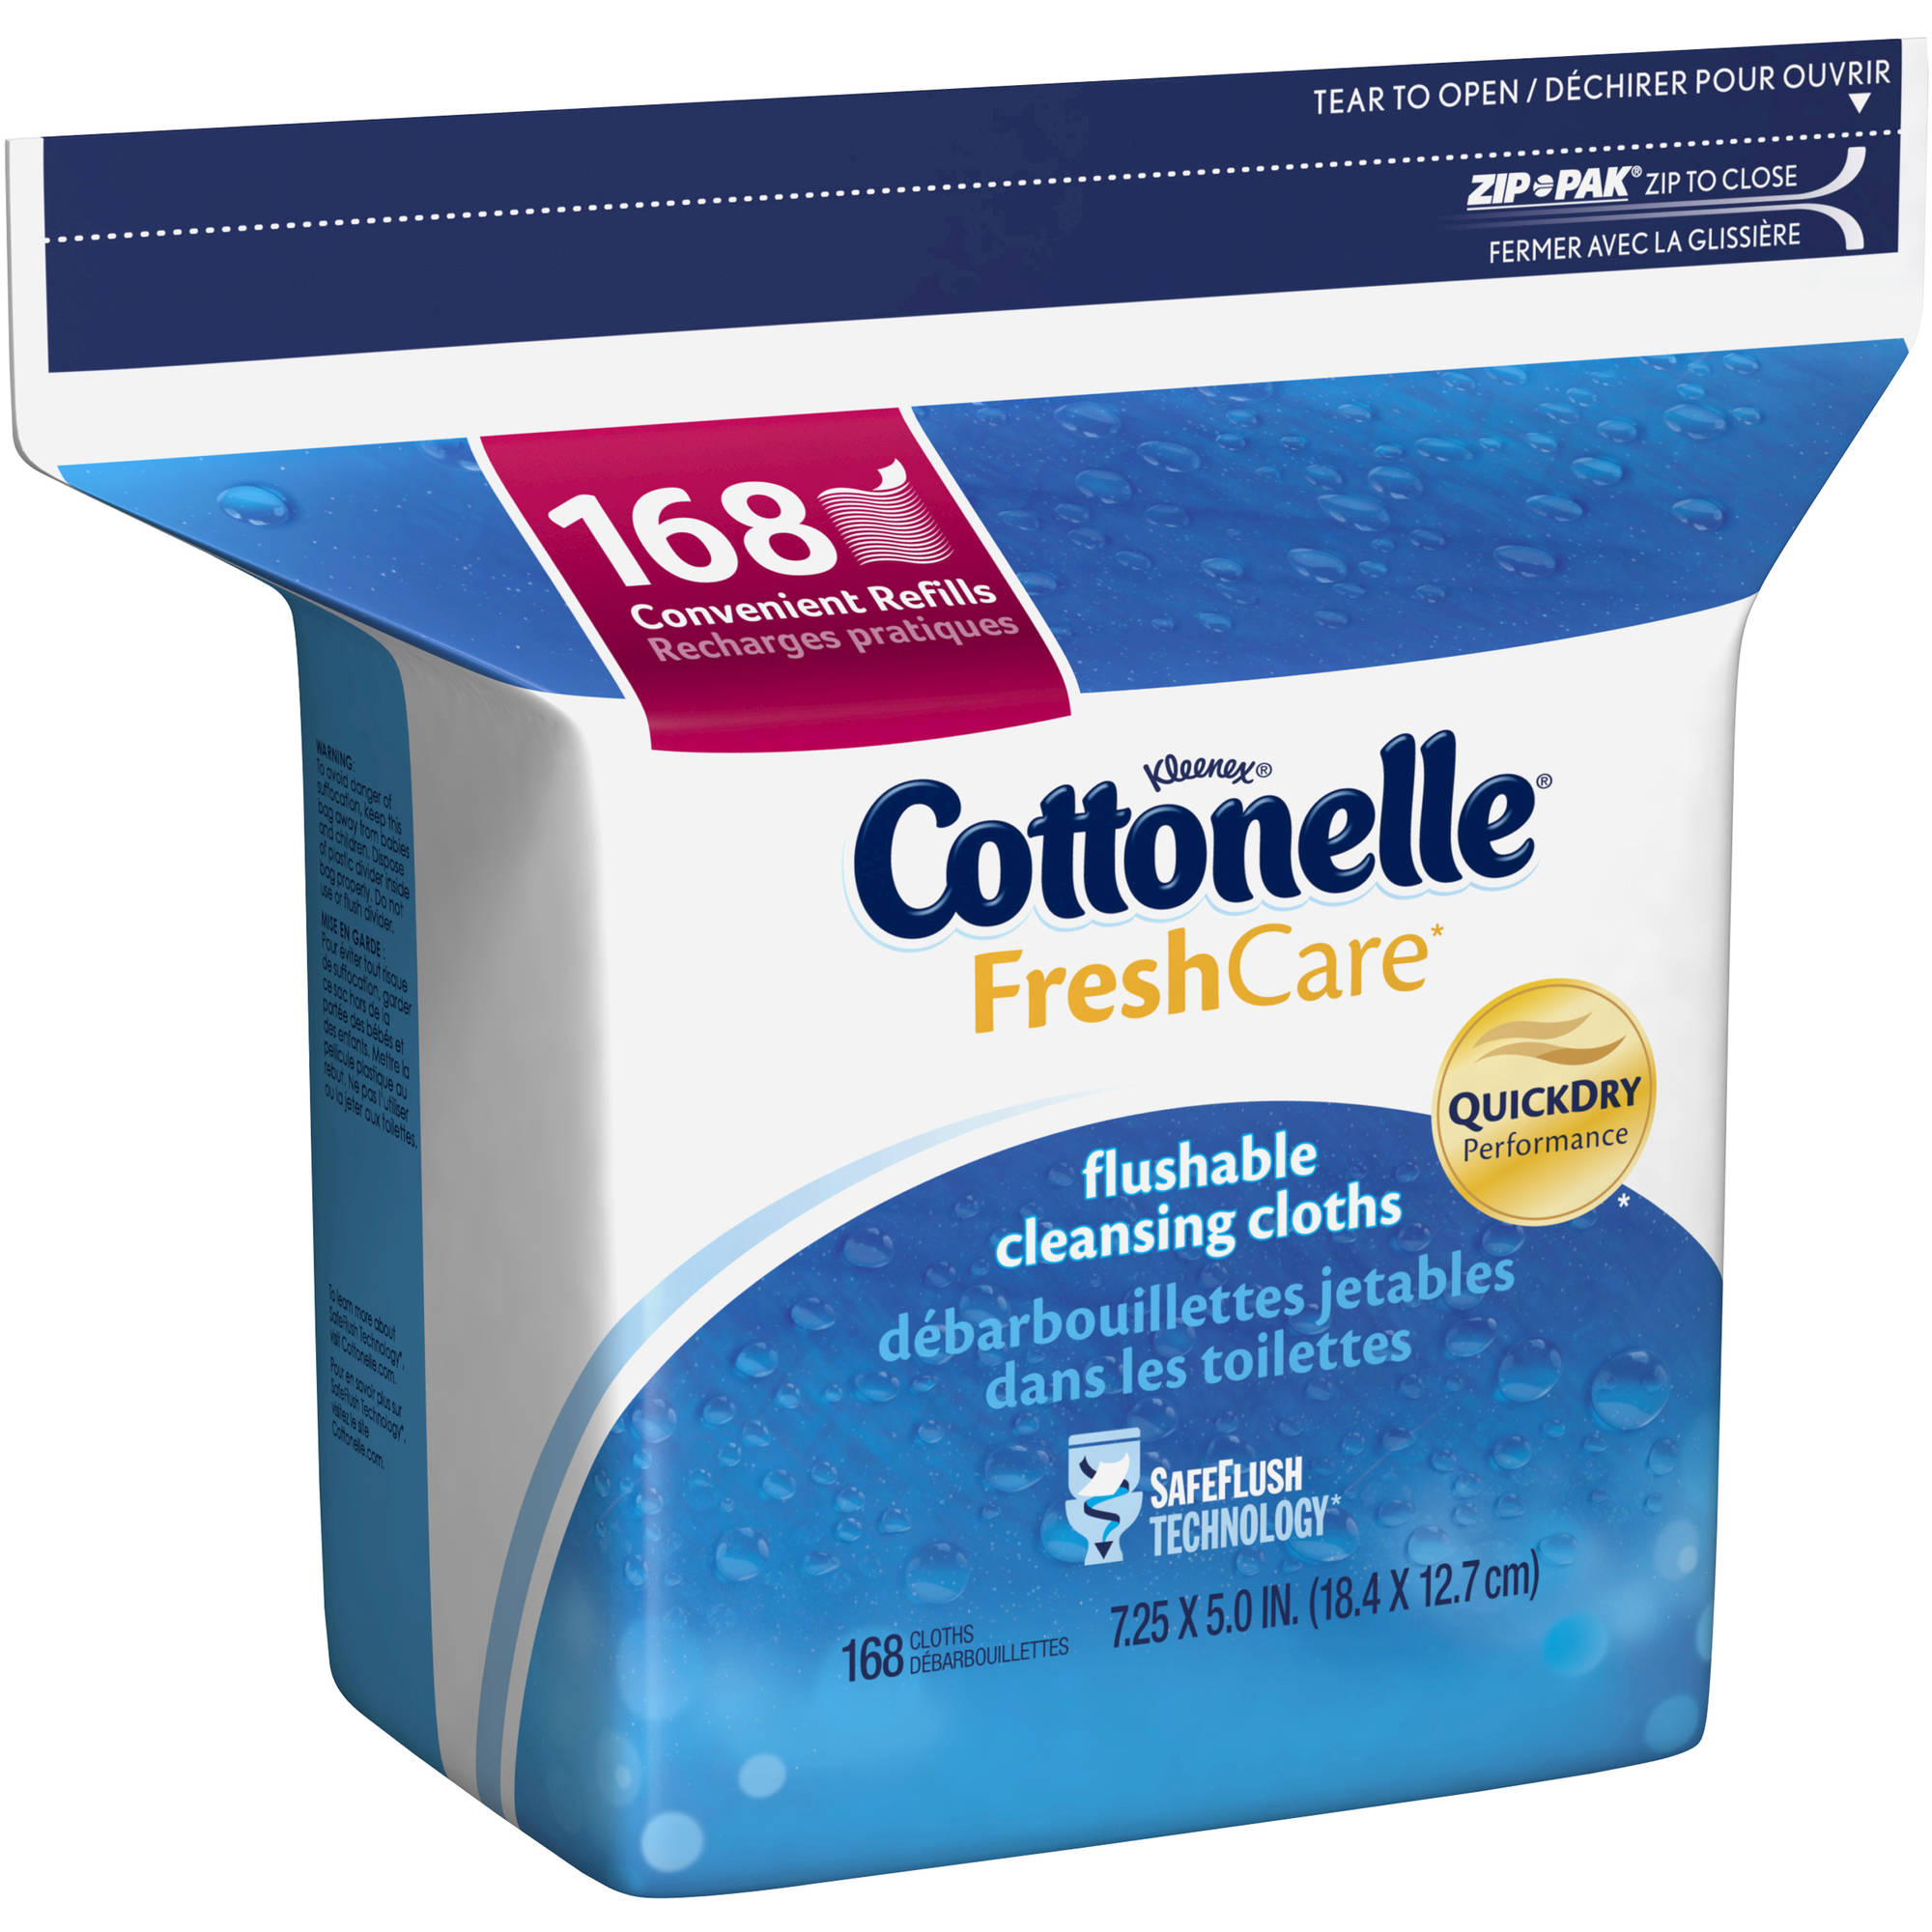 Cottonelle Fresh Care, Flushable Cleansing Cloths Refills, 168 Sheets